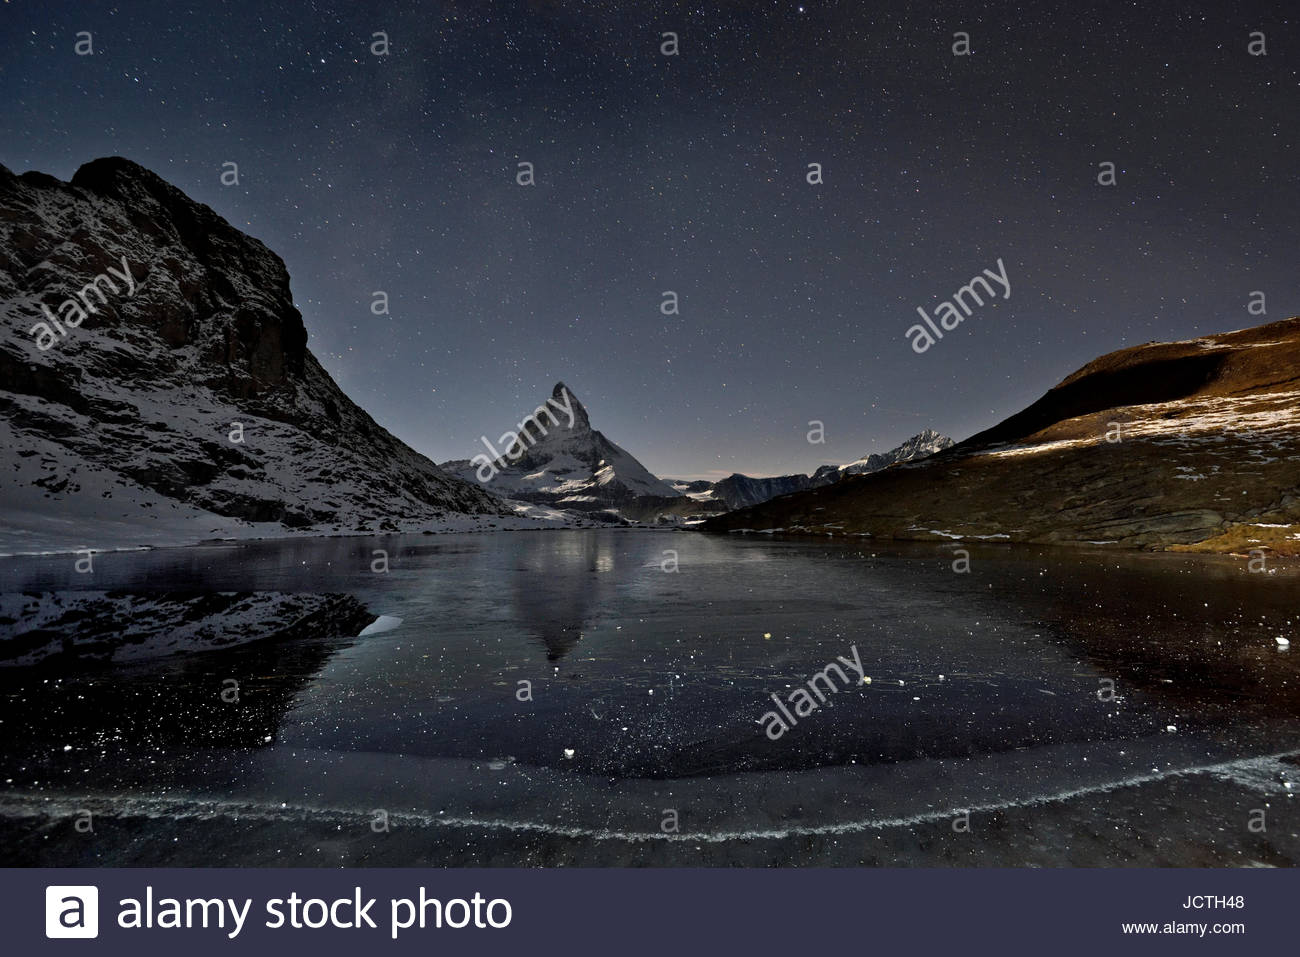 In the evening the Matterhorn (mountain) dominates the skyline. Stars shine bright in the night sky and a frozen - Stock Image